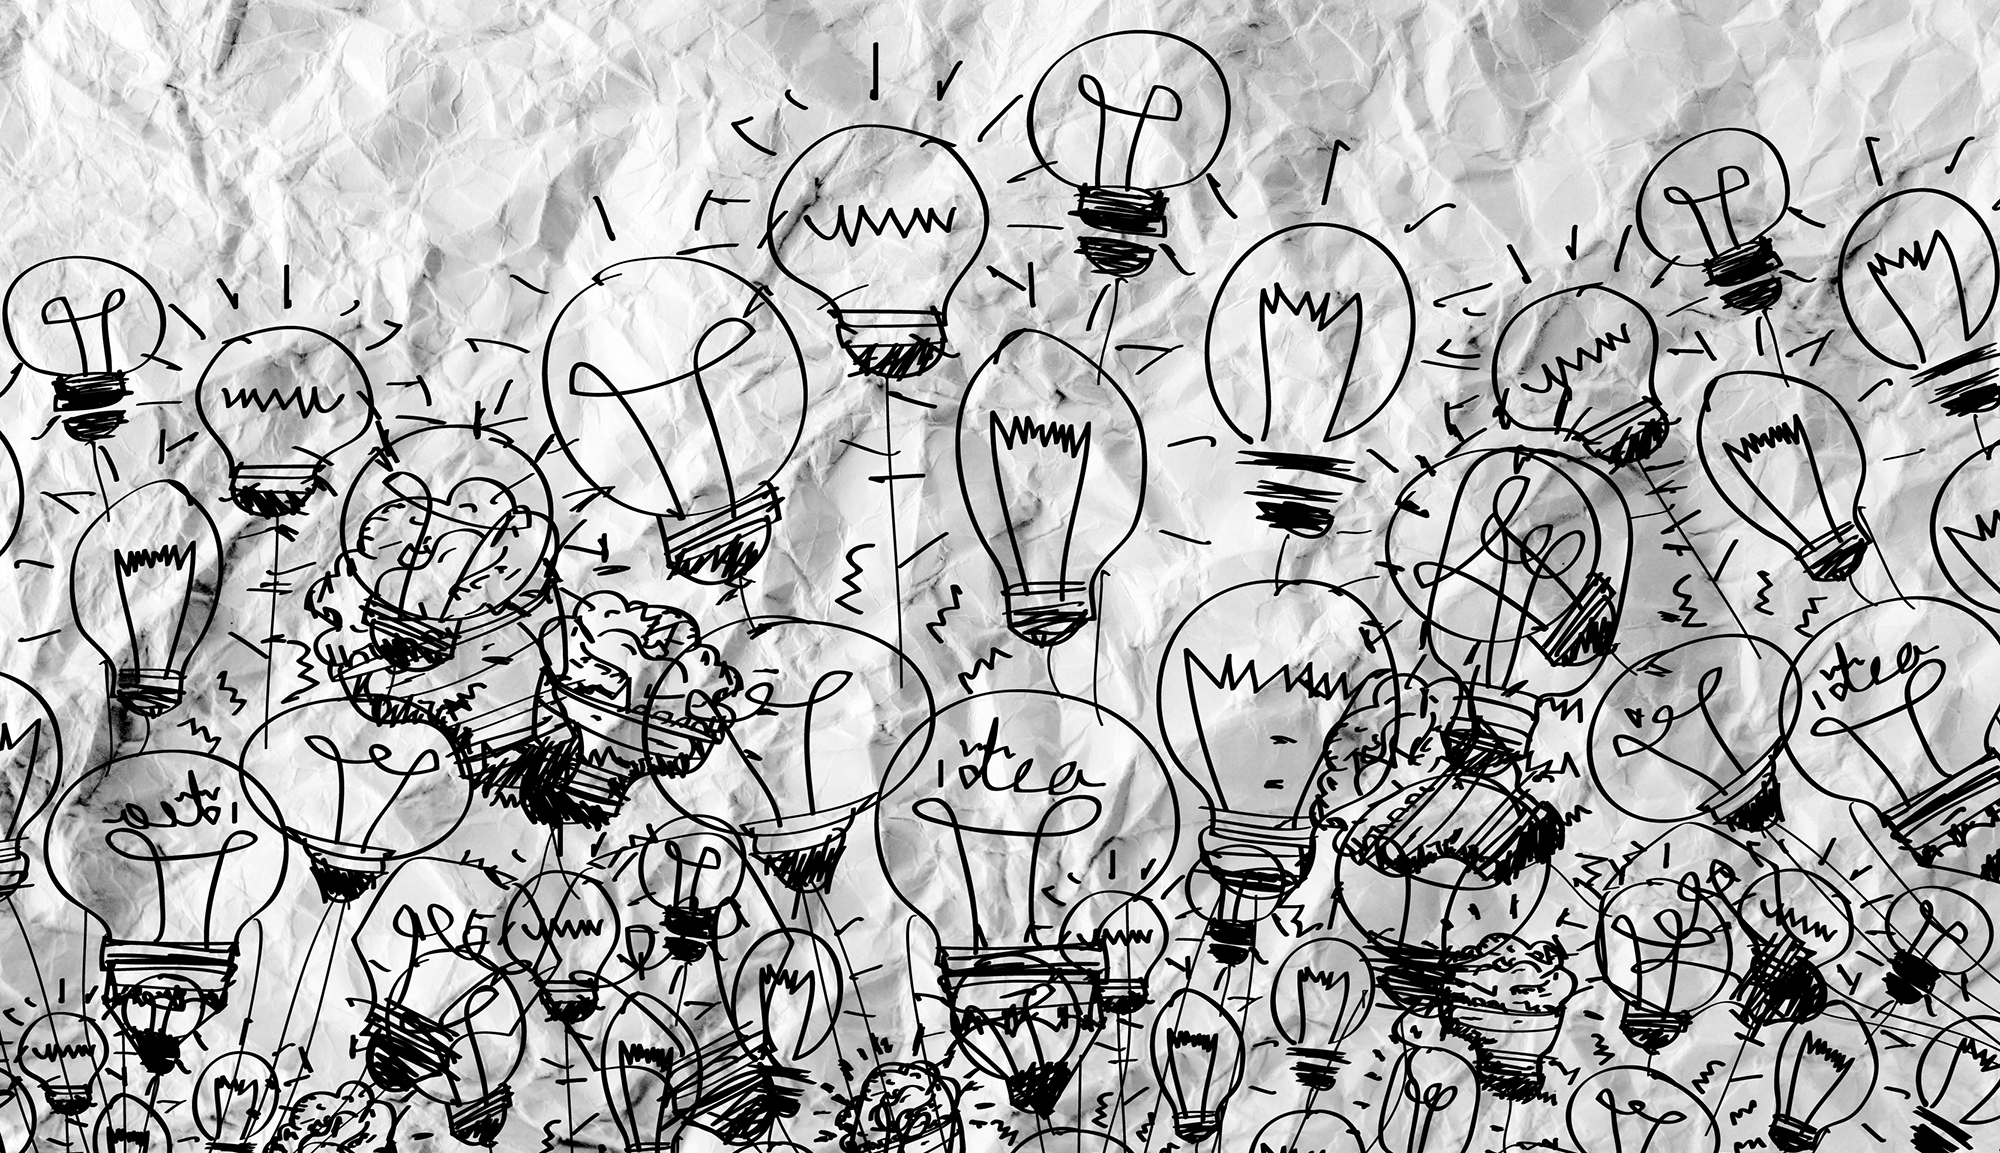 collage of light bulb drawings